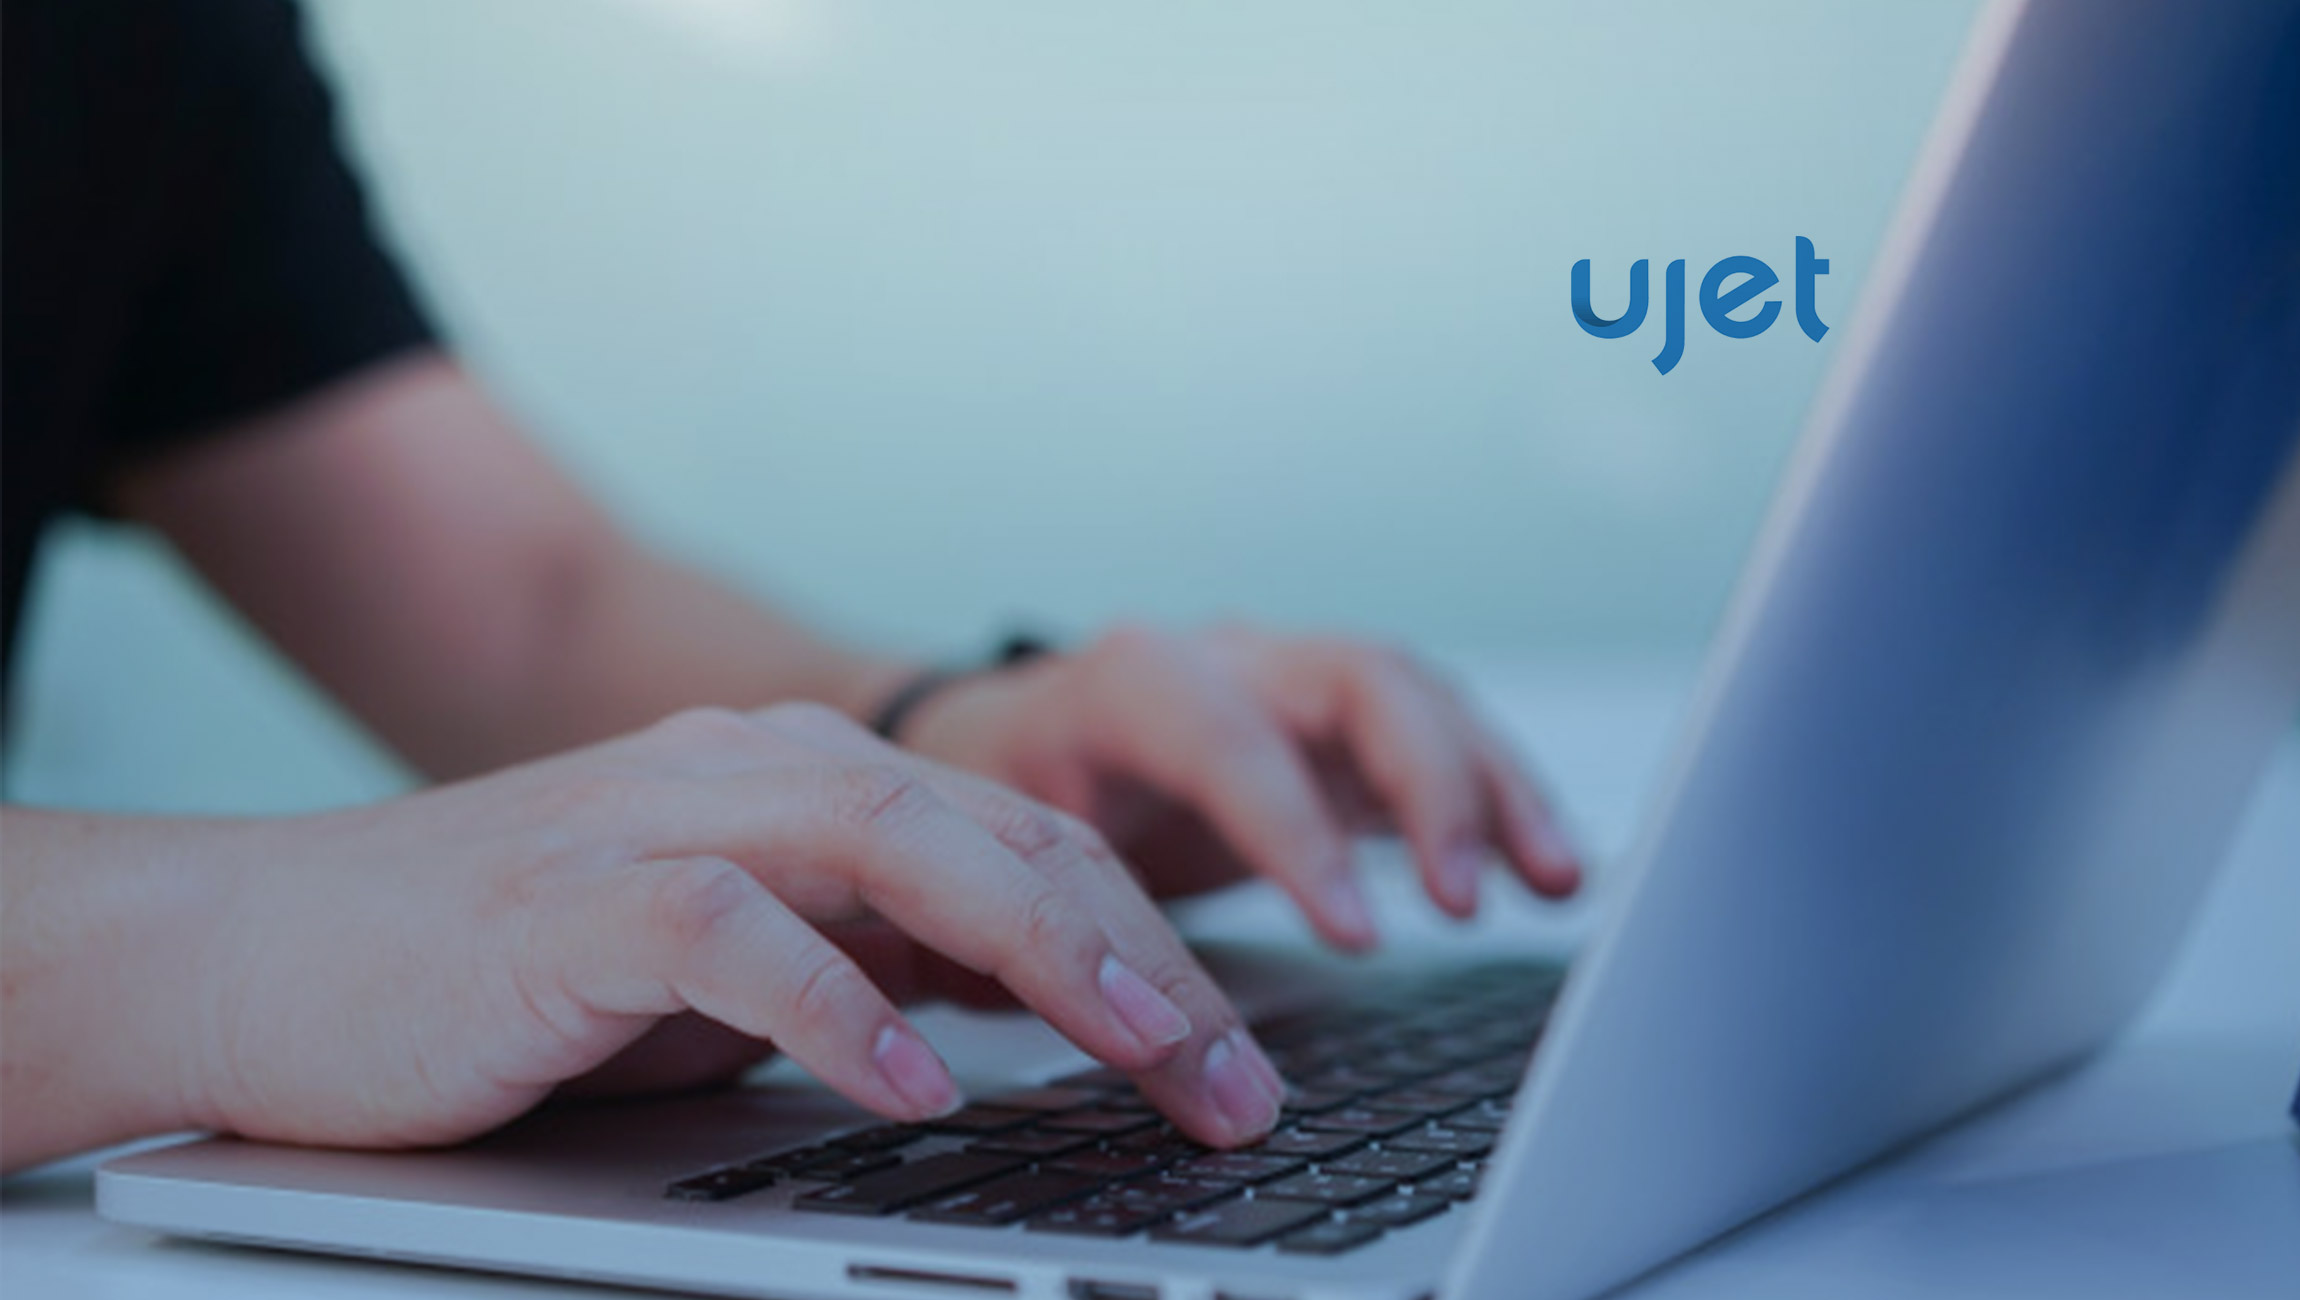 UJET Unveils Enhancements to Customer Support Platform That Expand Fit and Flexibility within the Contact Center Ecosystem